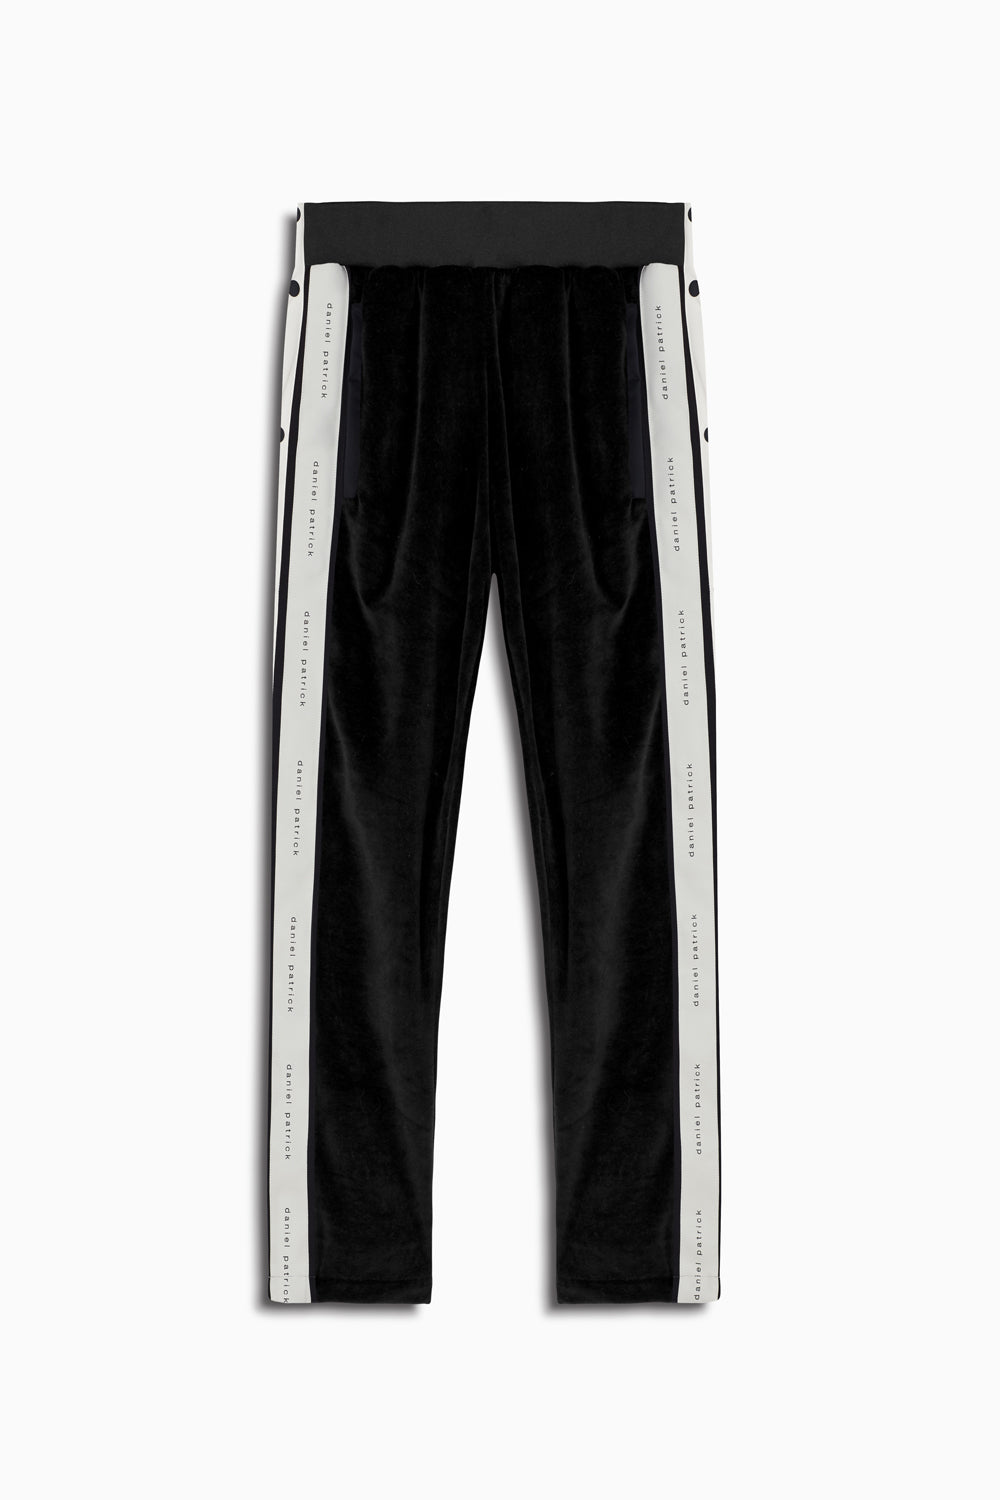 velour snap track pant in black/ivory by daniel patrick